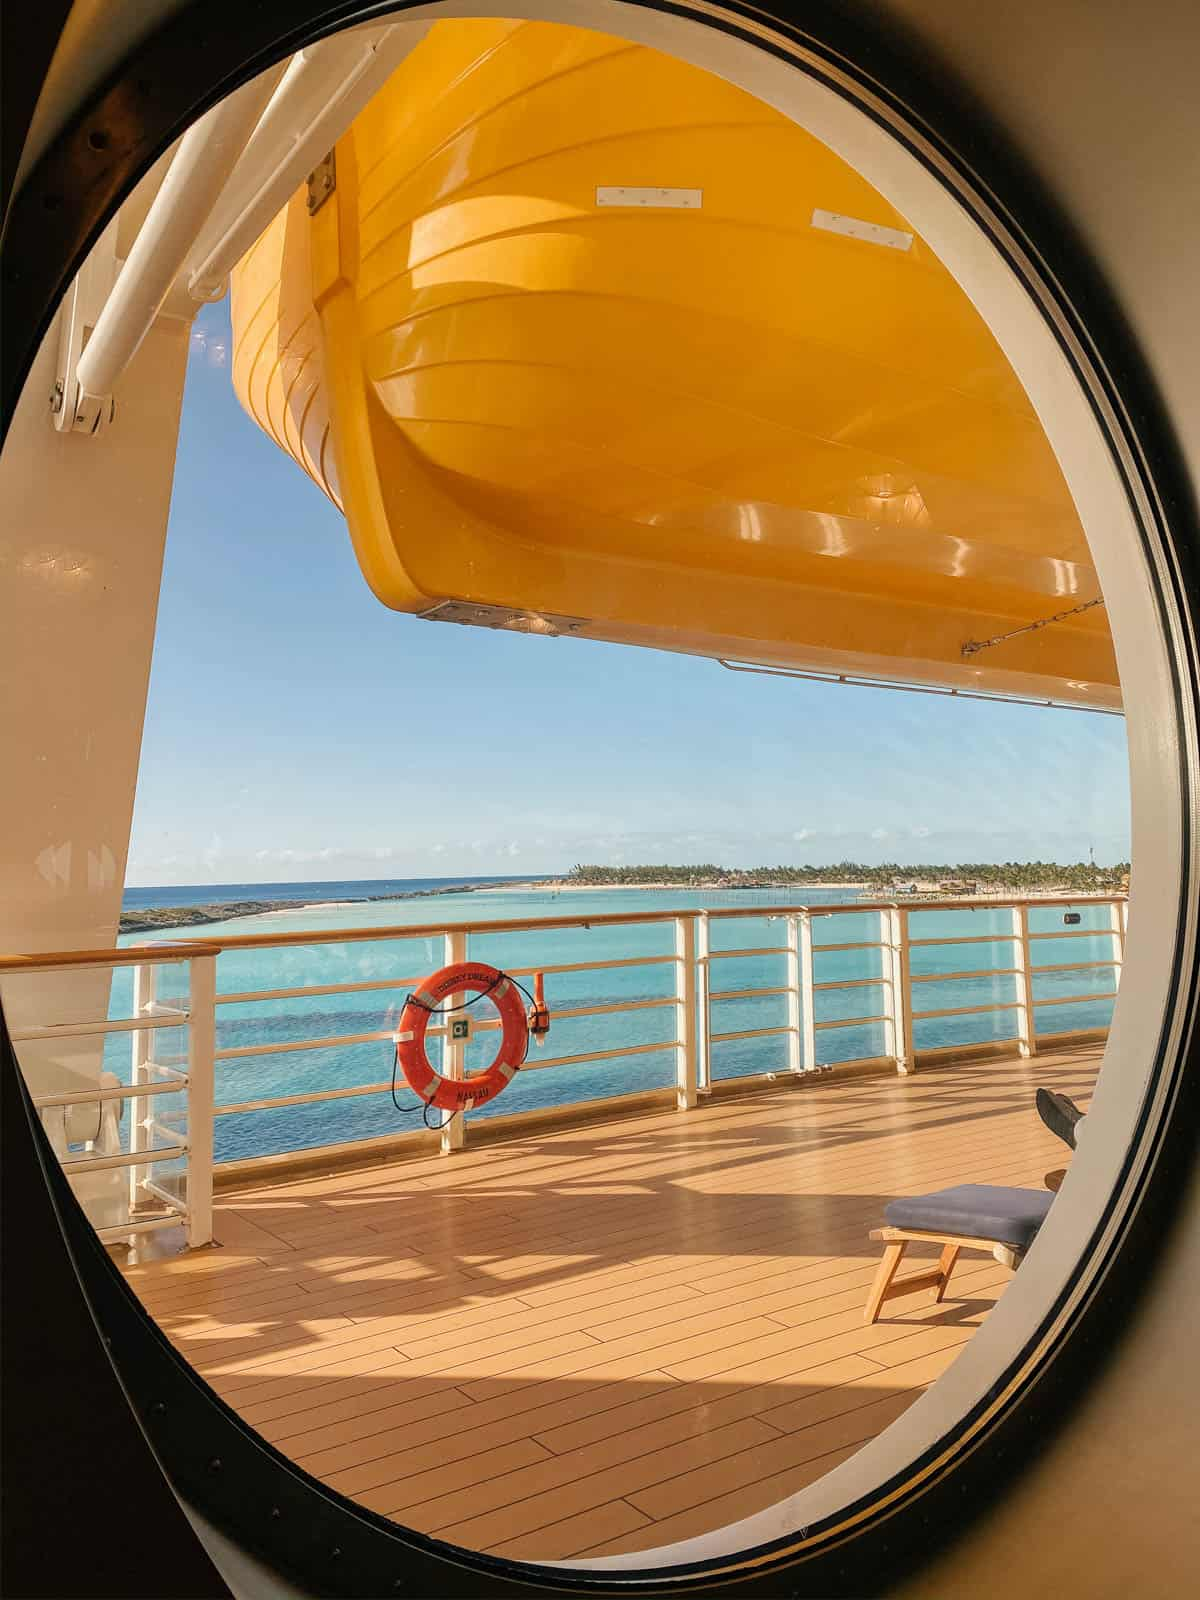 looking out port hole from disney dream cruise ship overlooking castaway cay